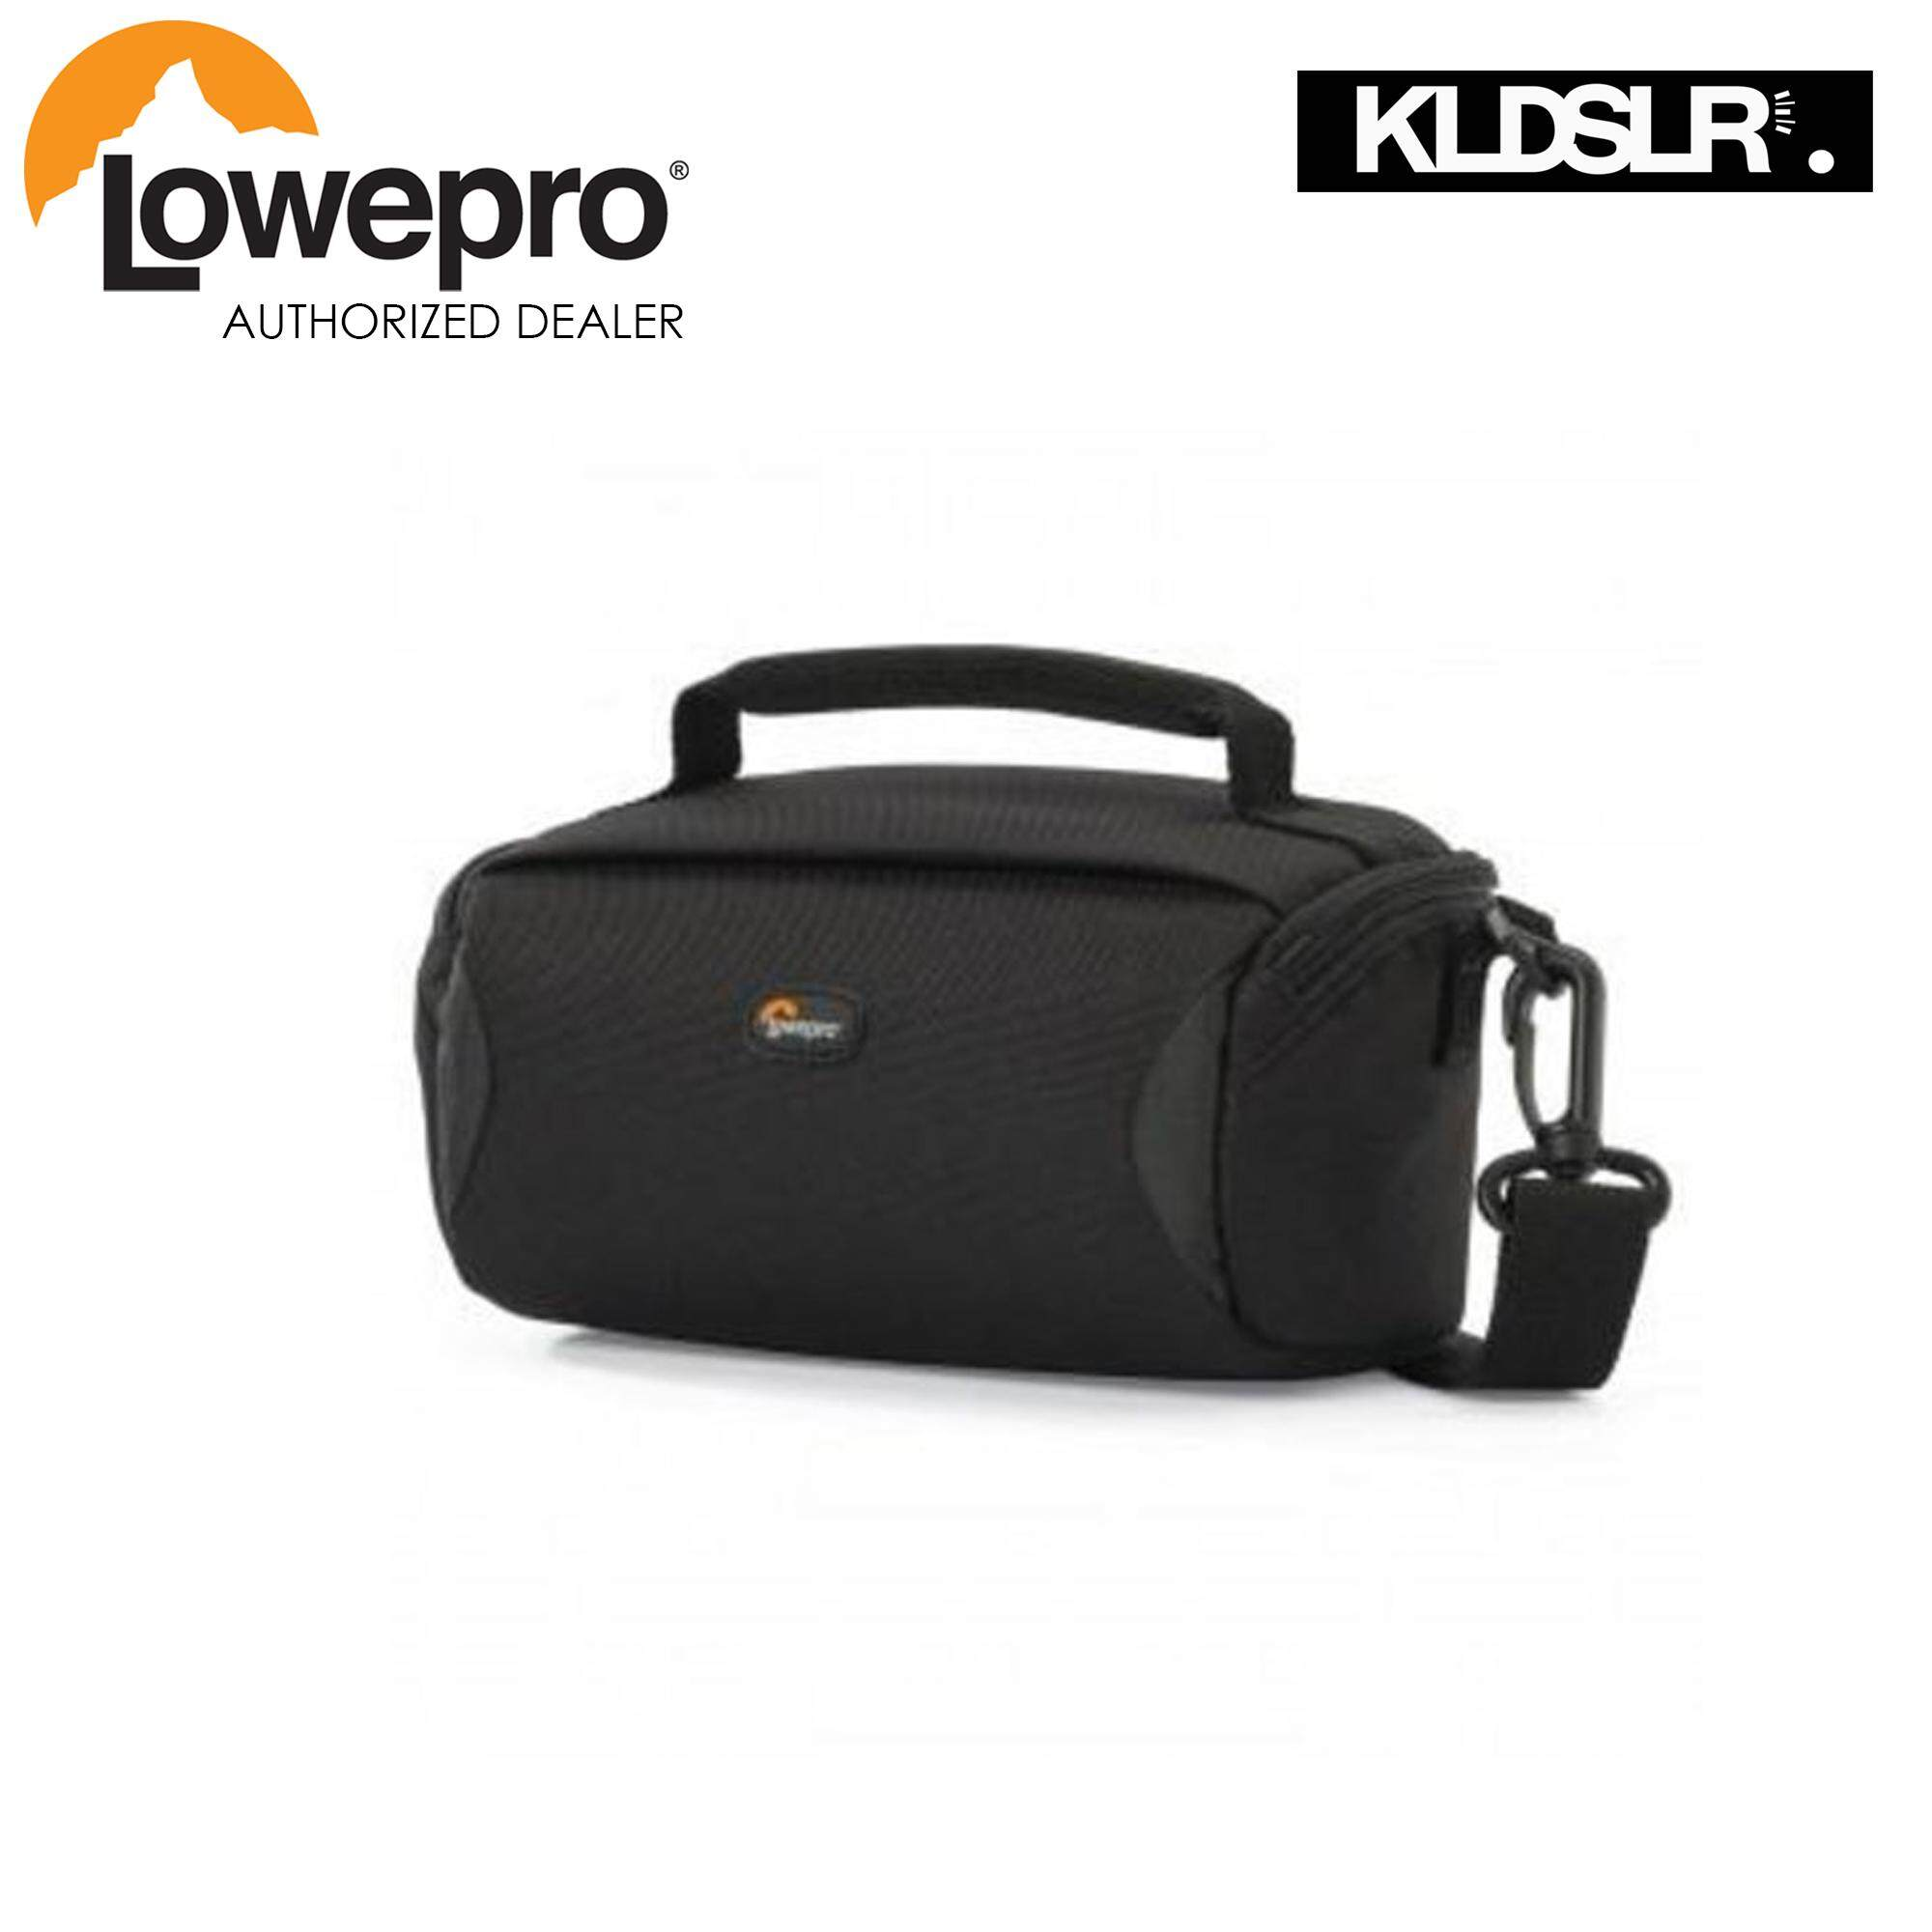 Sell Lowepro Cheapest Best Quality My Store Streamline 250 Myr 58